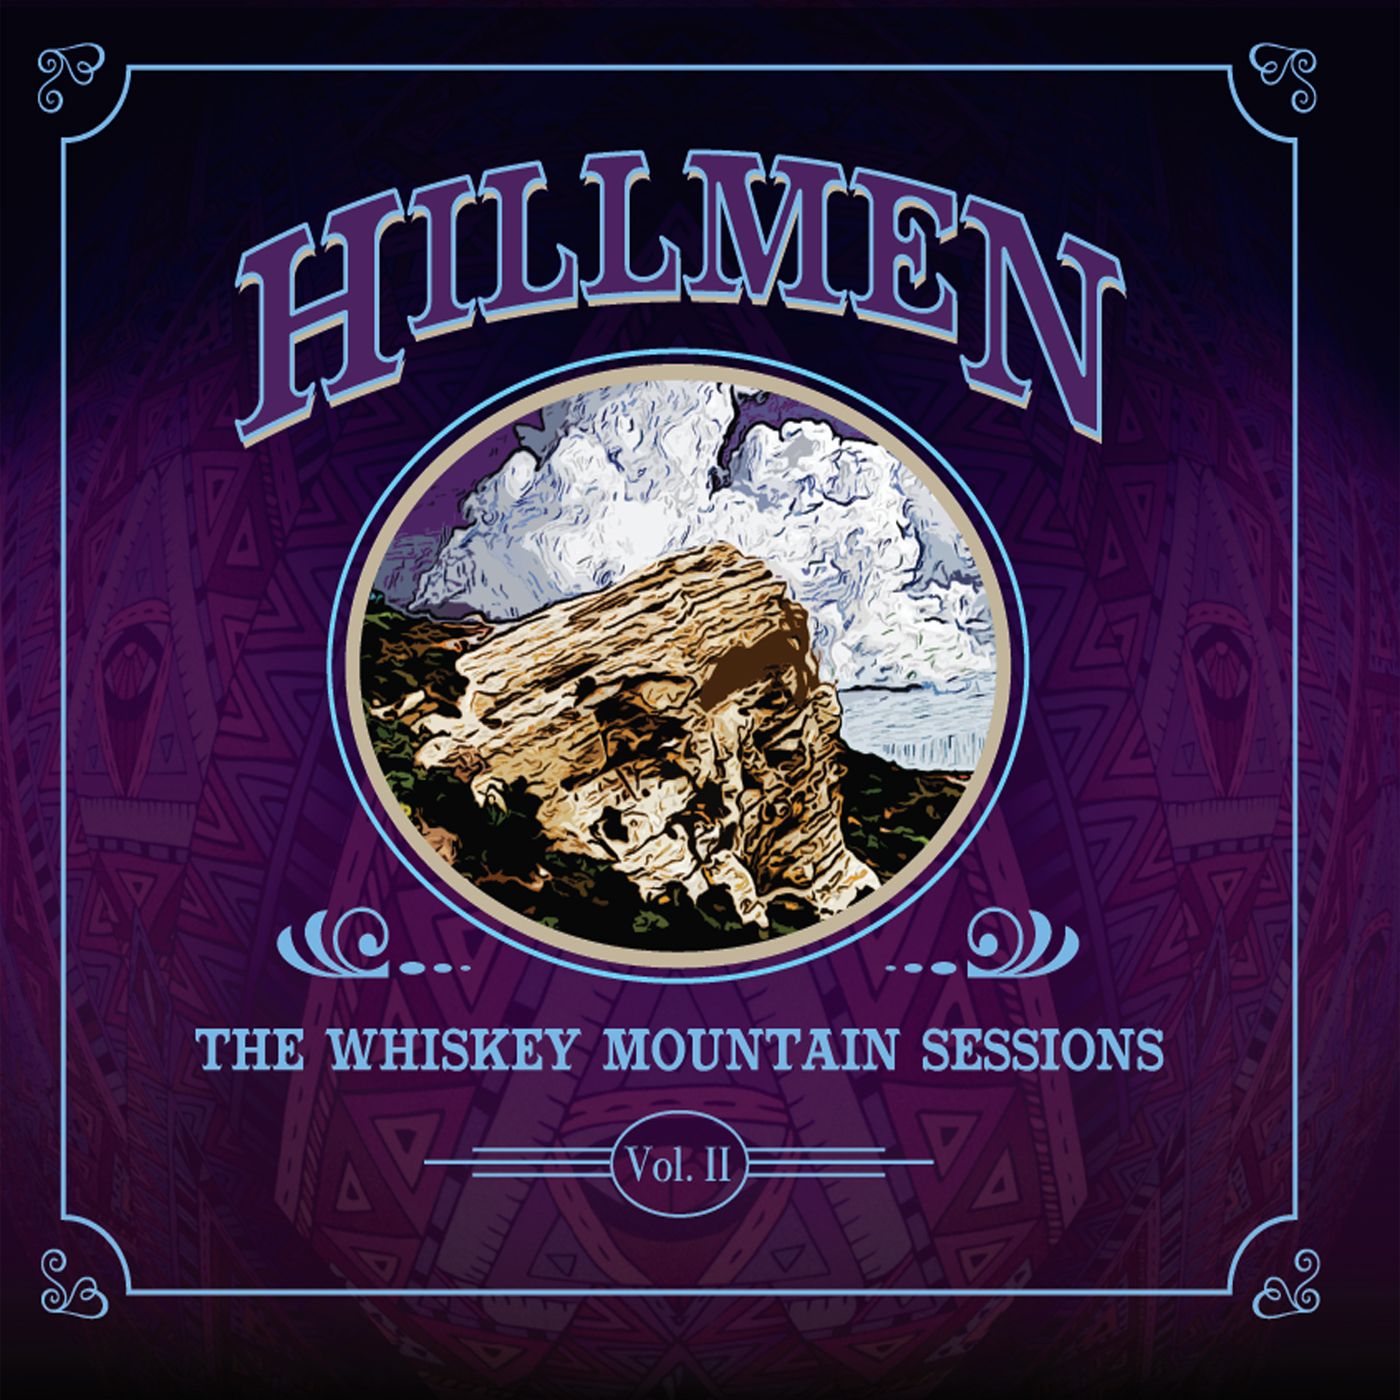 Hillmen: The Whiskey Mountain Sessions II